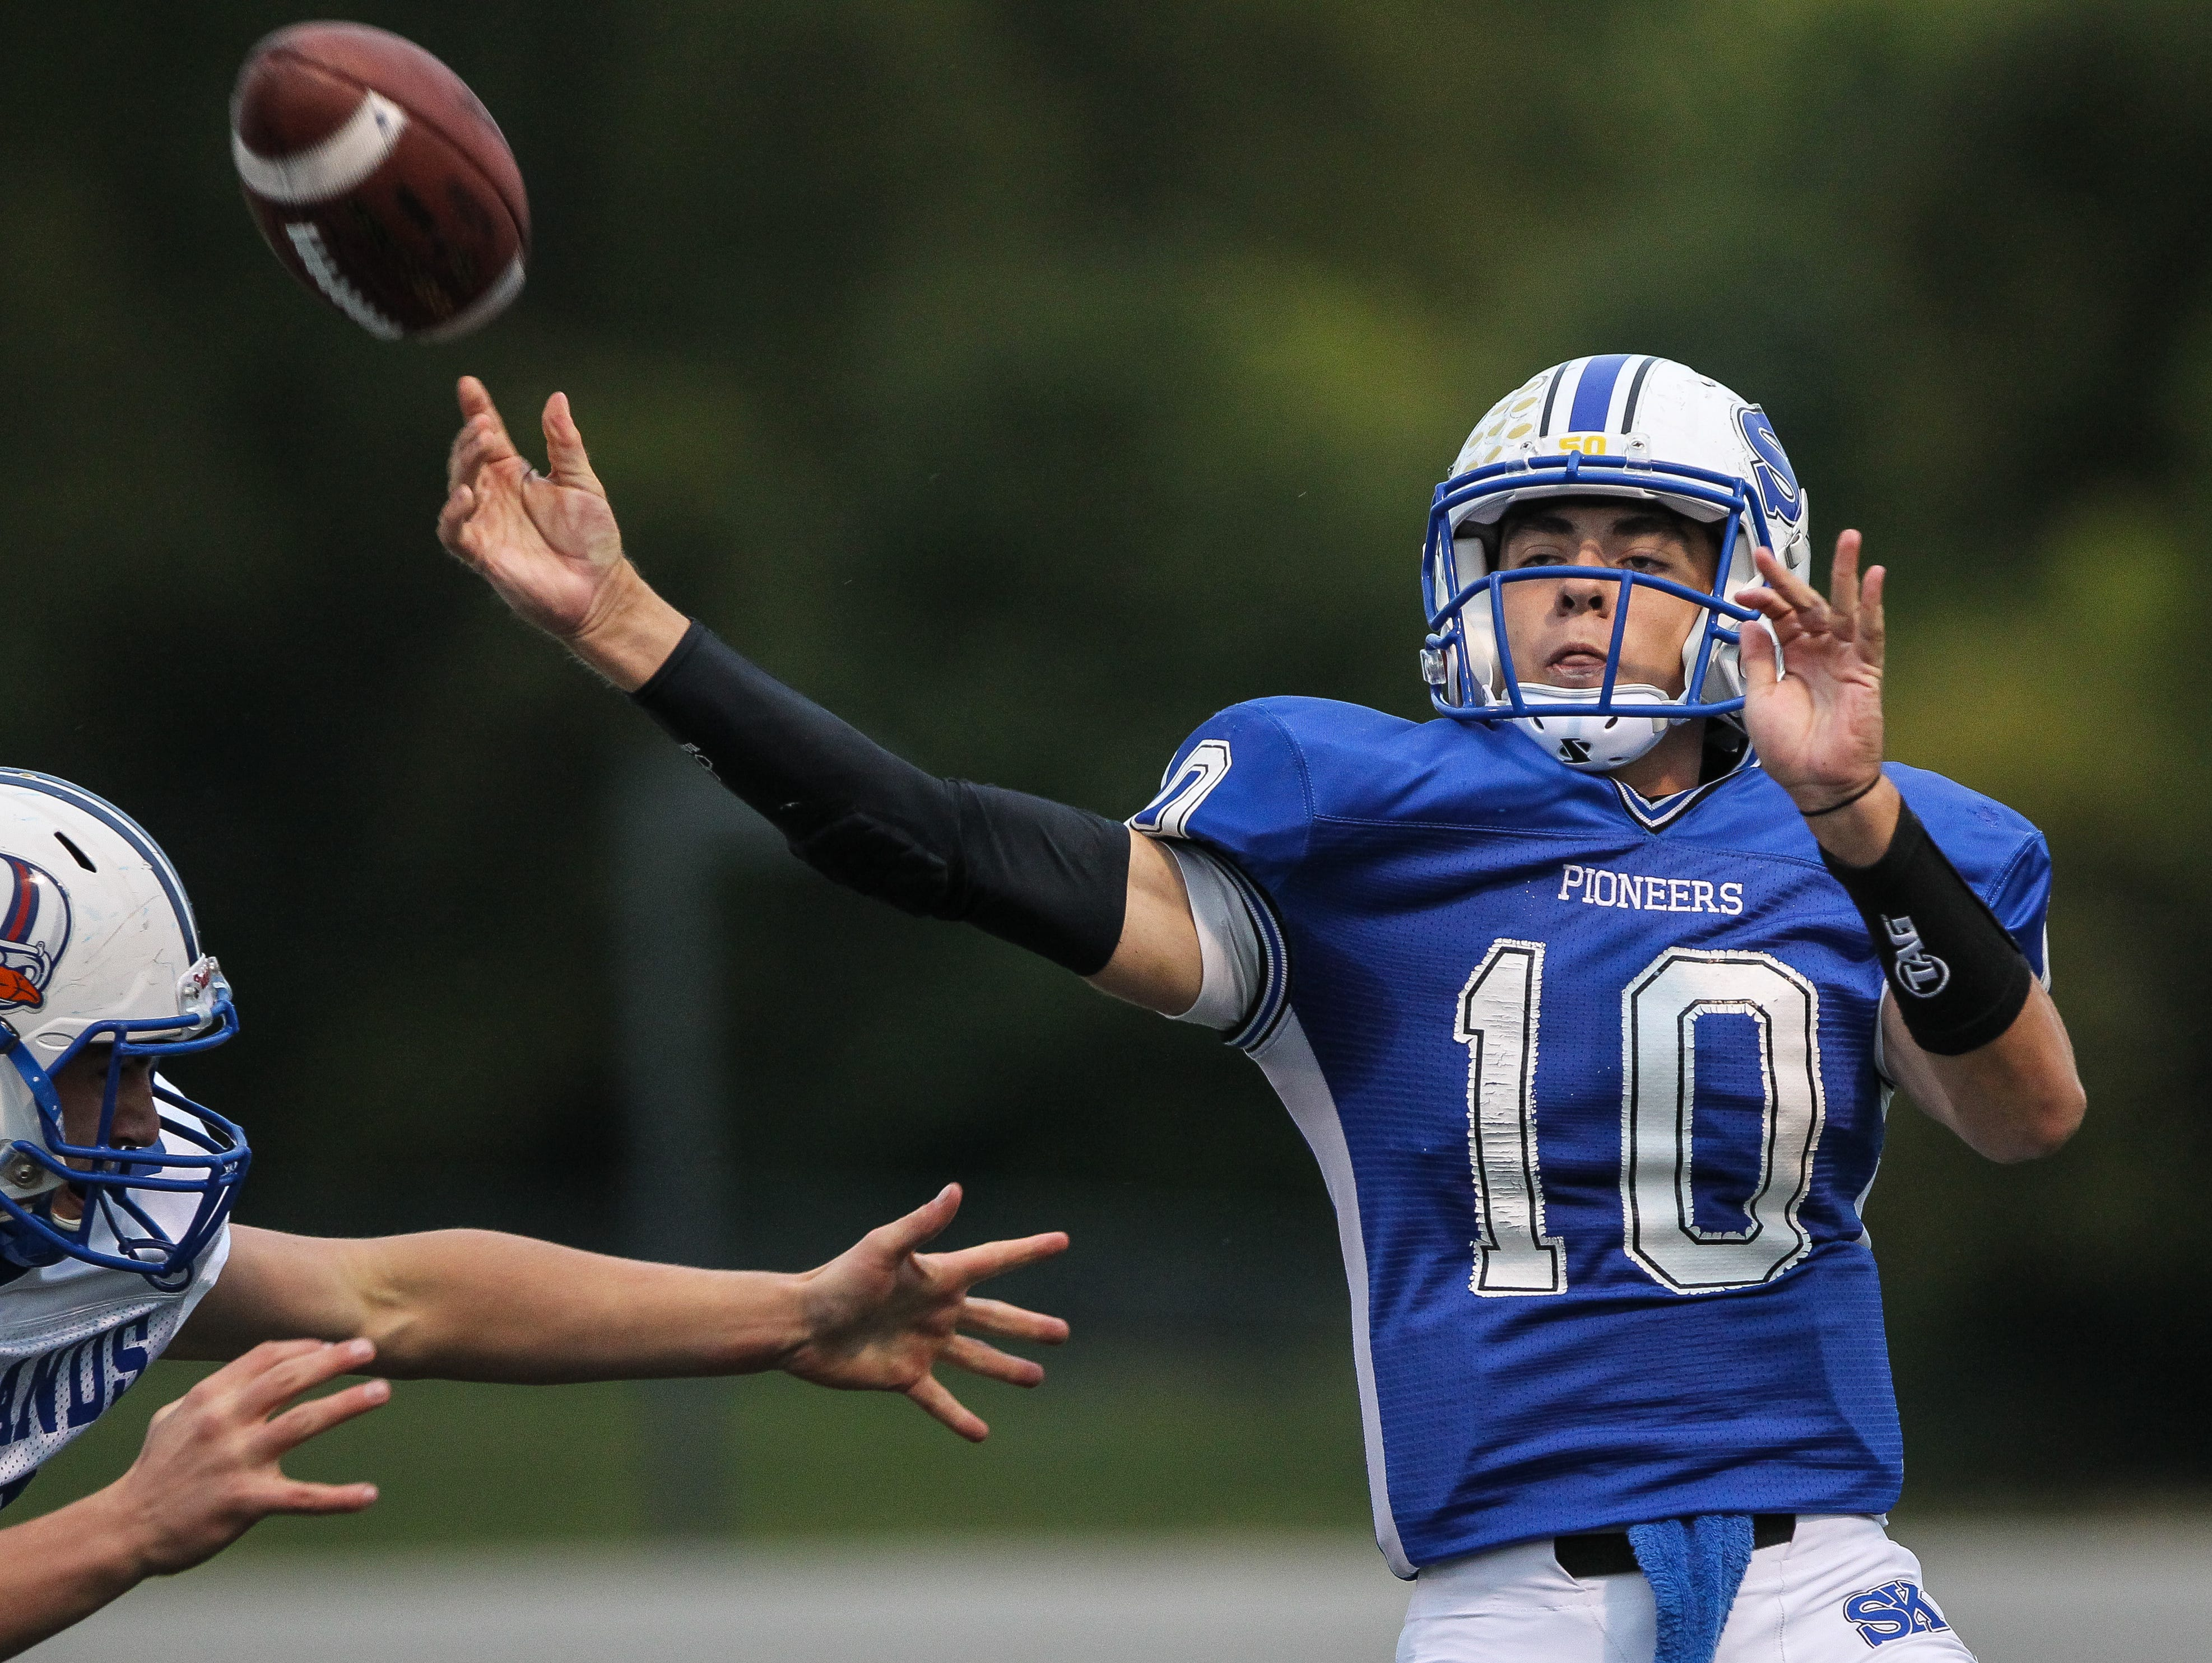 Cameron Racke and his Simon Kenton teammates are ranked No. 4 in the latest 6A state poll.